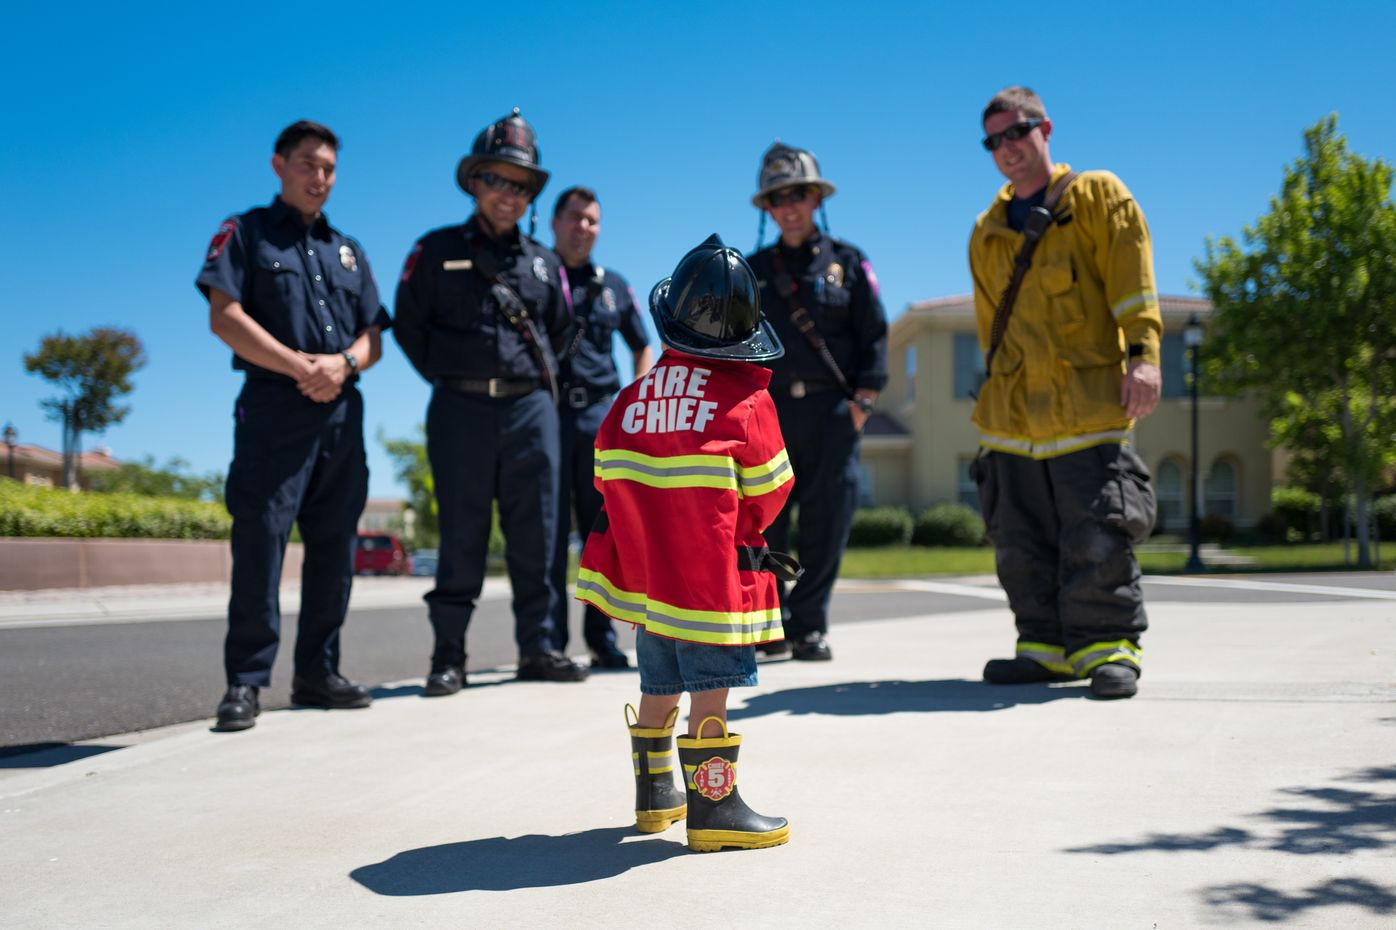 Photo of a small boy wearing a fireman costume looking at a group of adult firemen who think he is adorable.